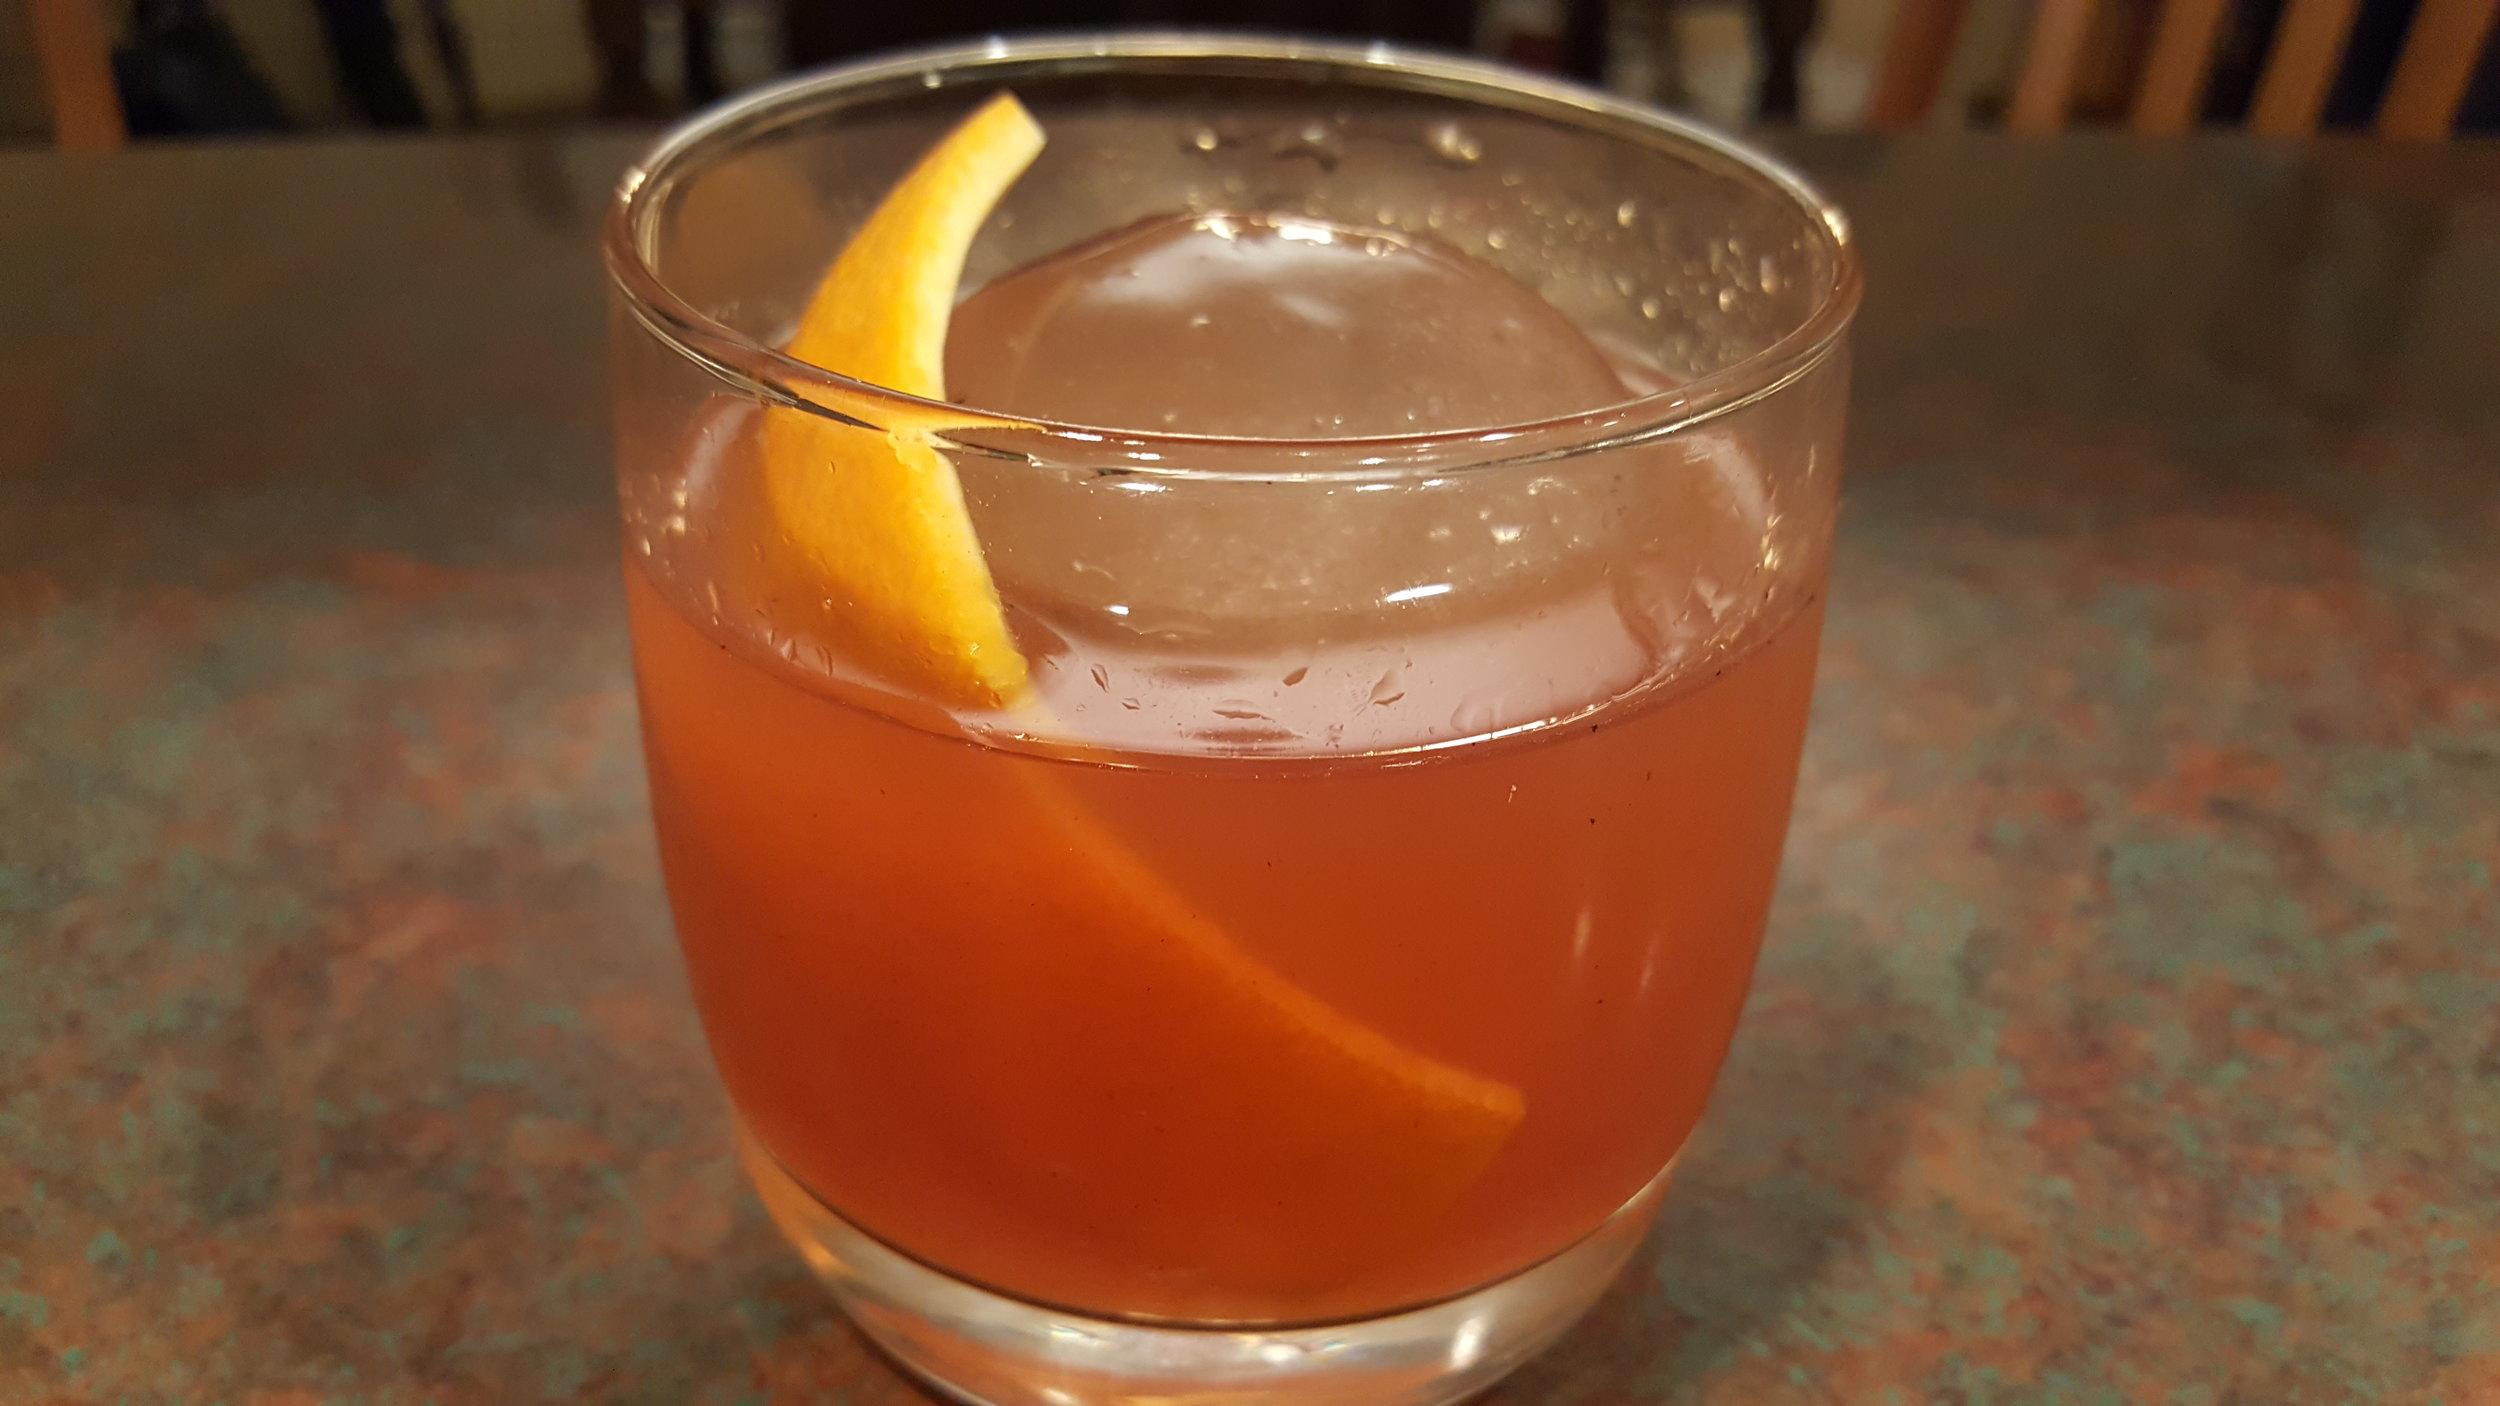 """Pictured is an  American  version of the Smoked Old Fashioned made with Rye Whiskey, details in """"Additional Thoughts"""" at the bottom of the page."""